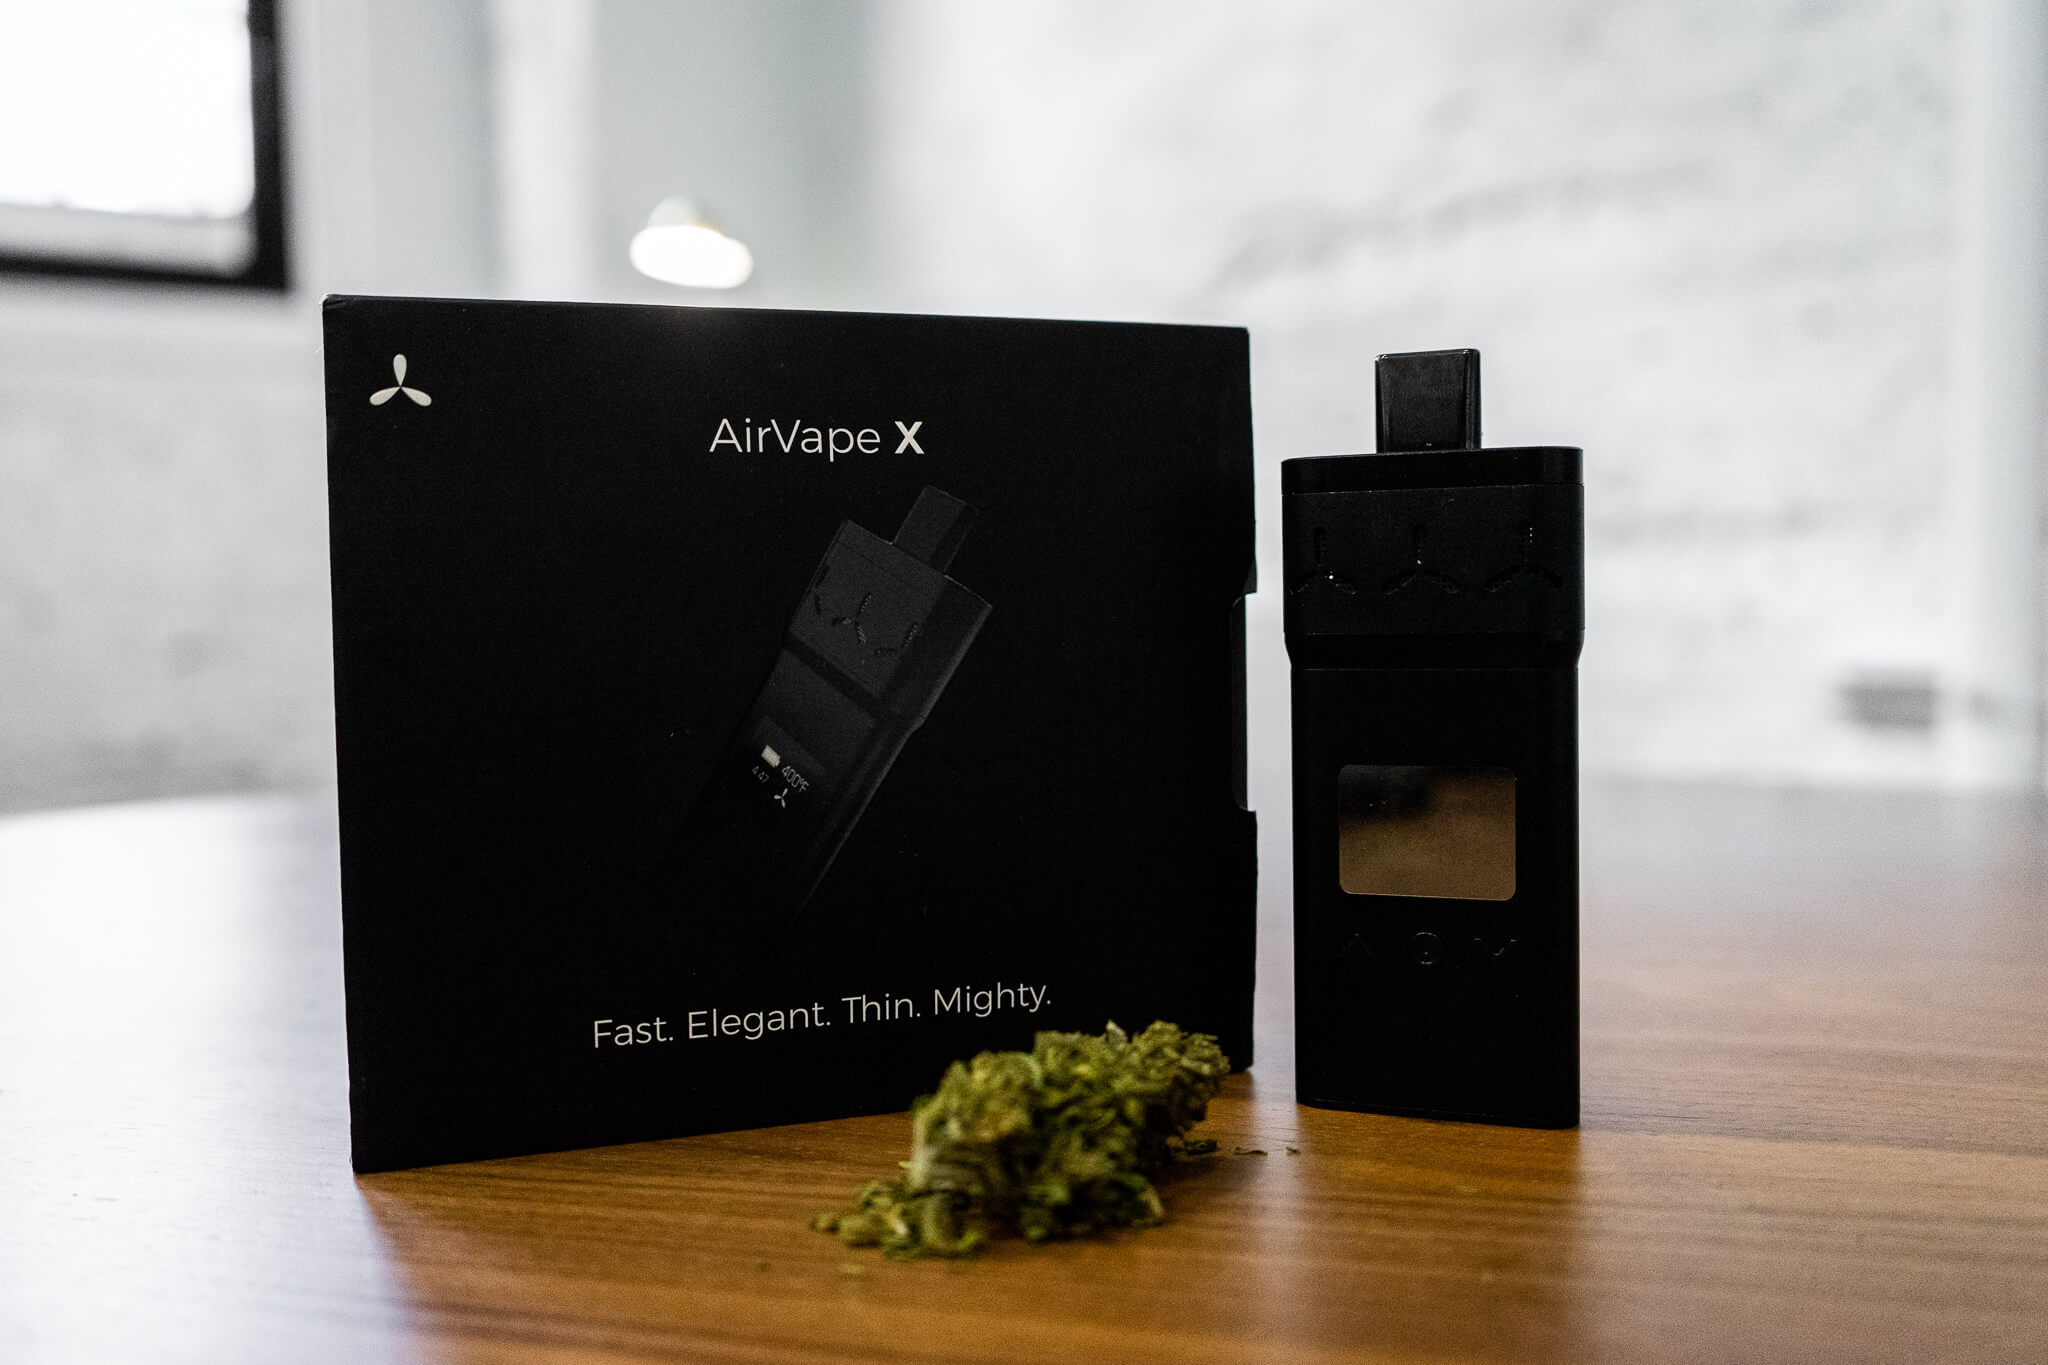 AirVape X next to the box